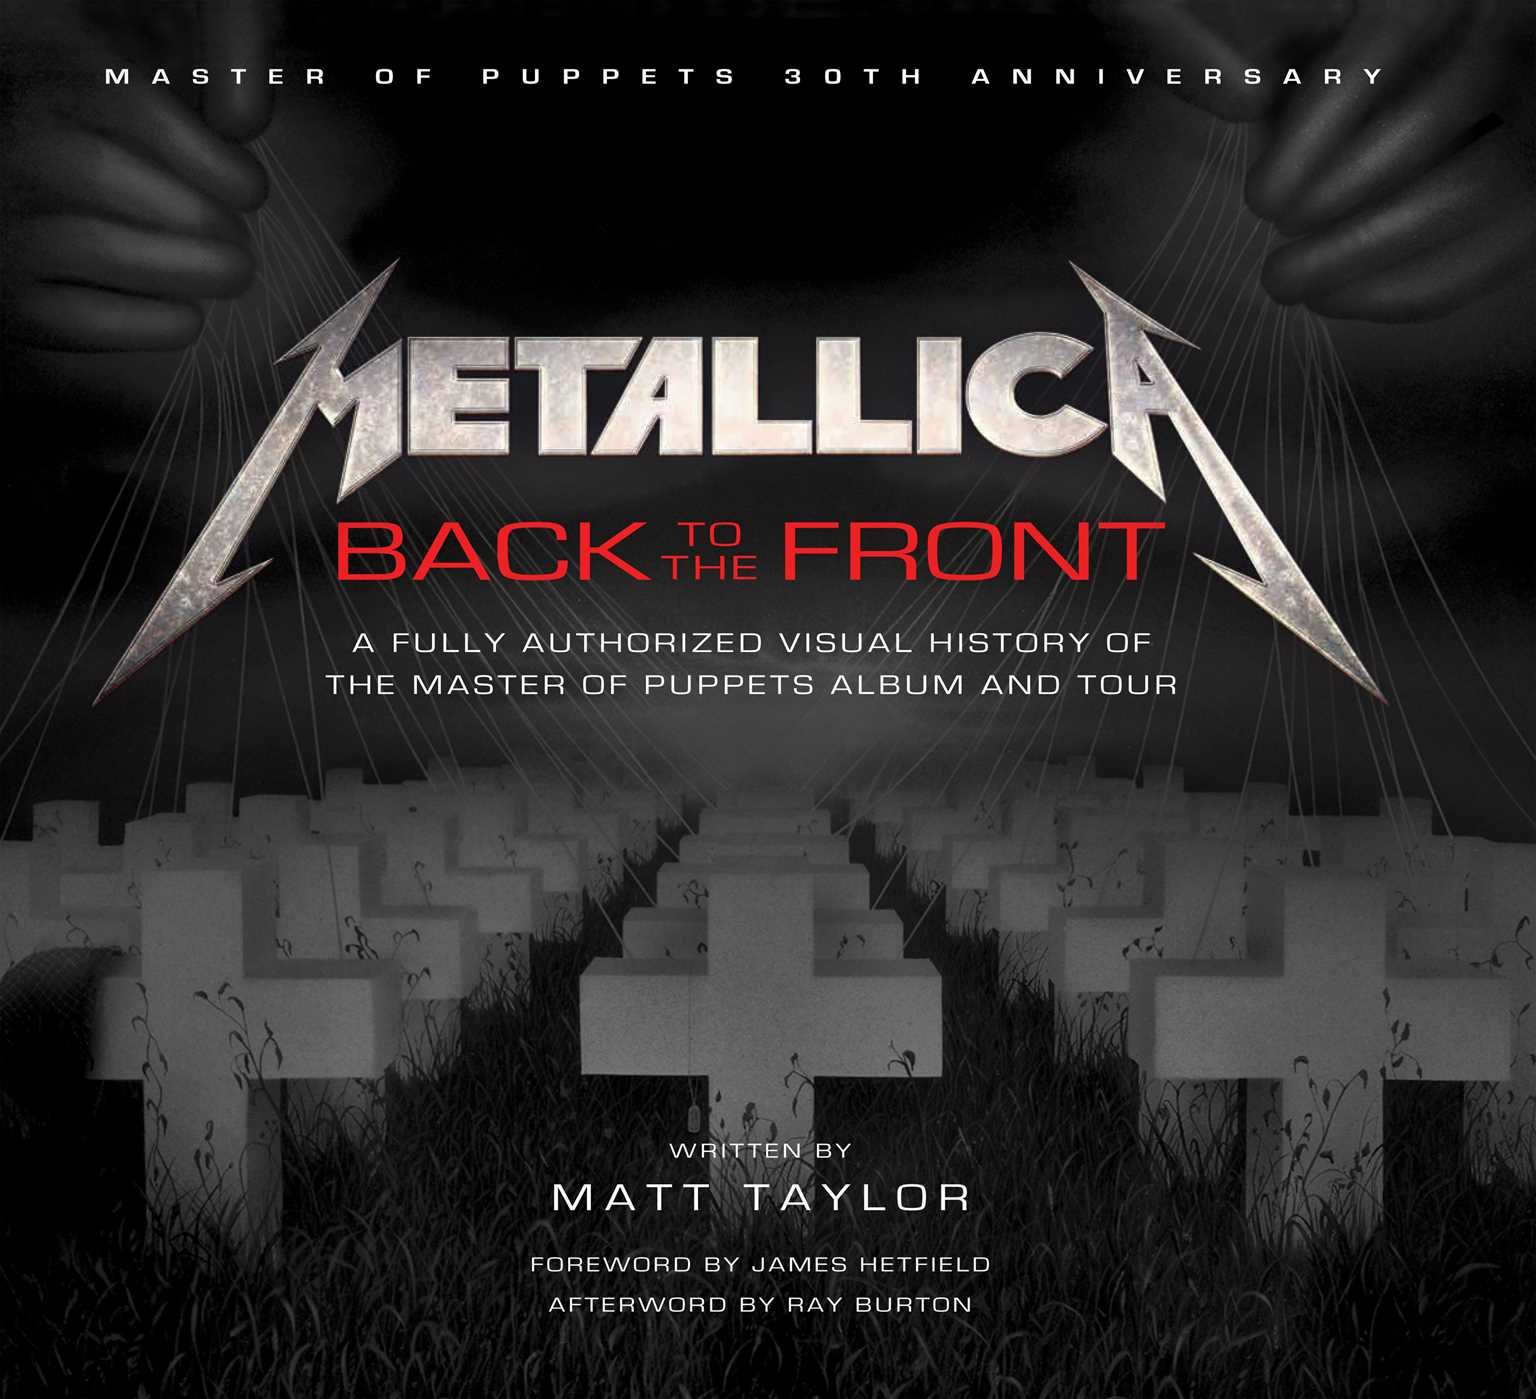 metallica back to the front a fully authorized visual history of the master of puppets album and tour matt taylor ray burton james hetfield - Metallica Christmas Songs